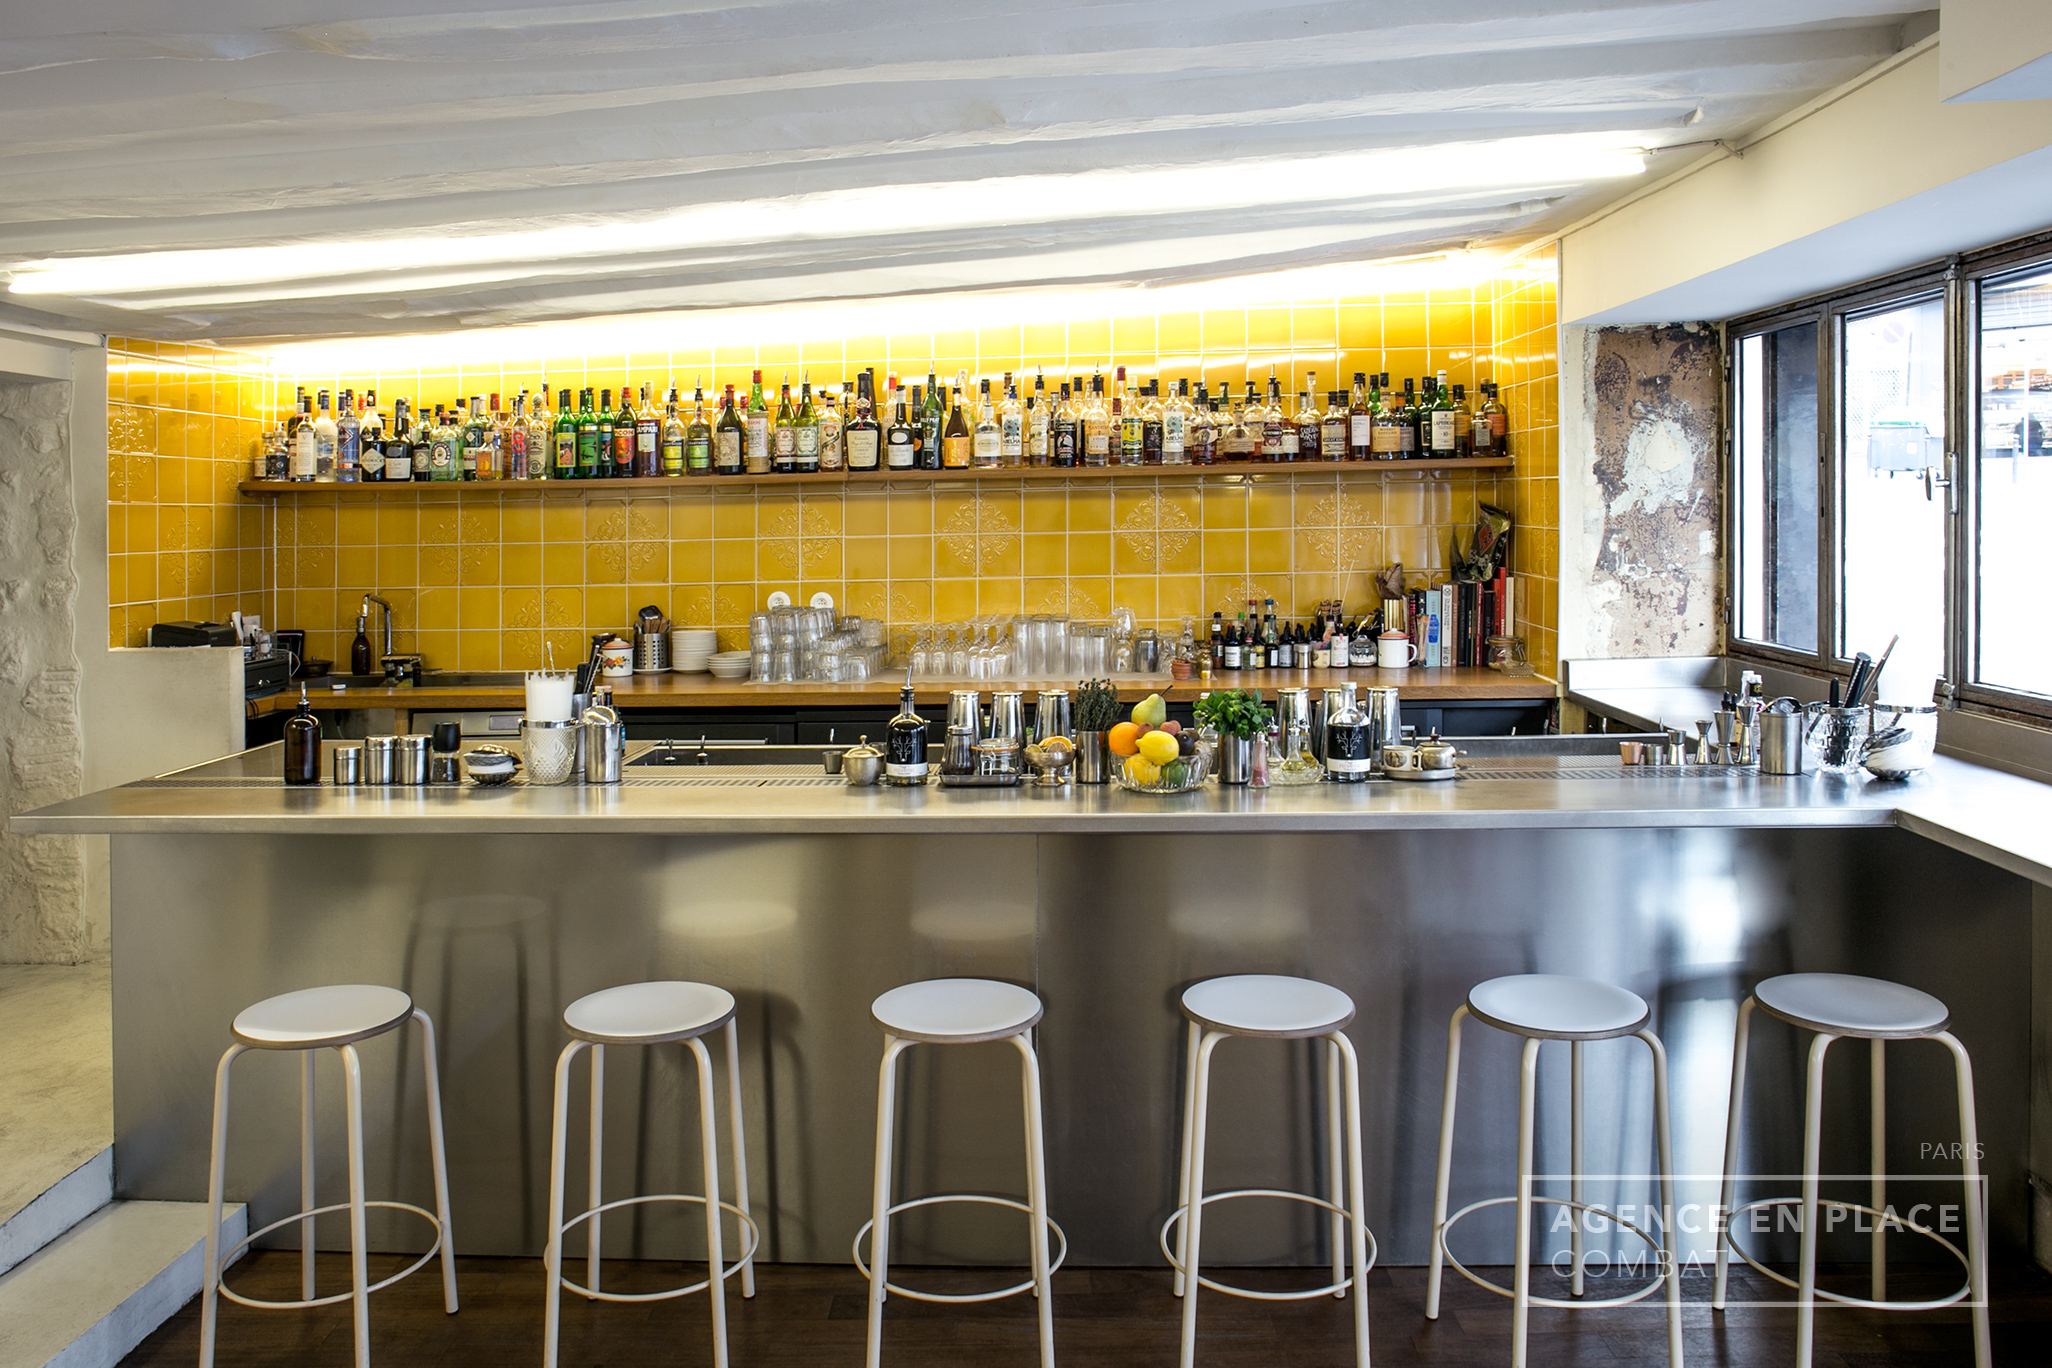 combat-cocktailsbar-agenceenplace-000